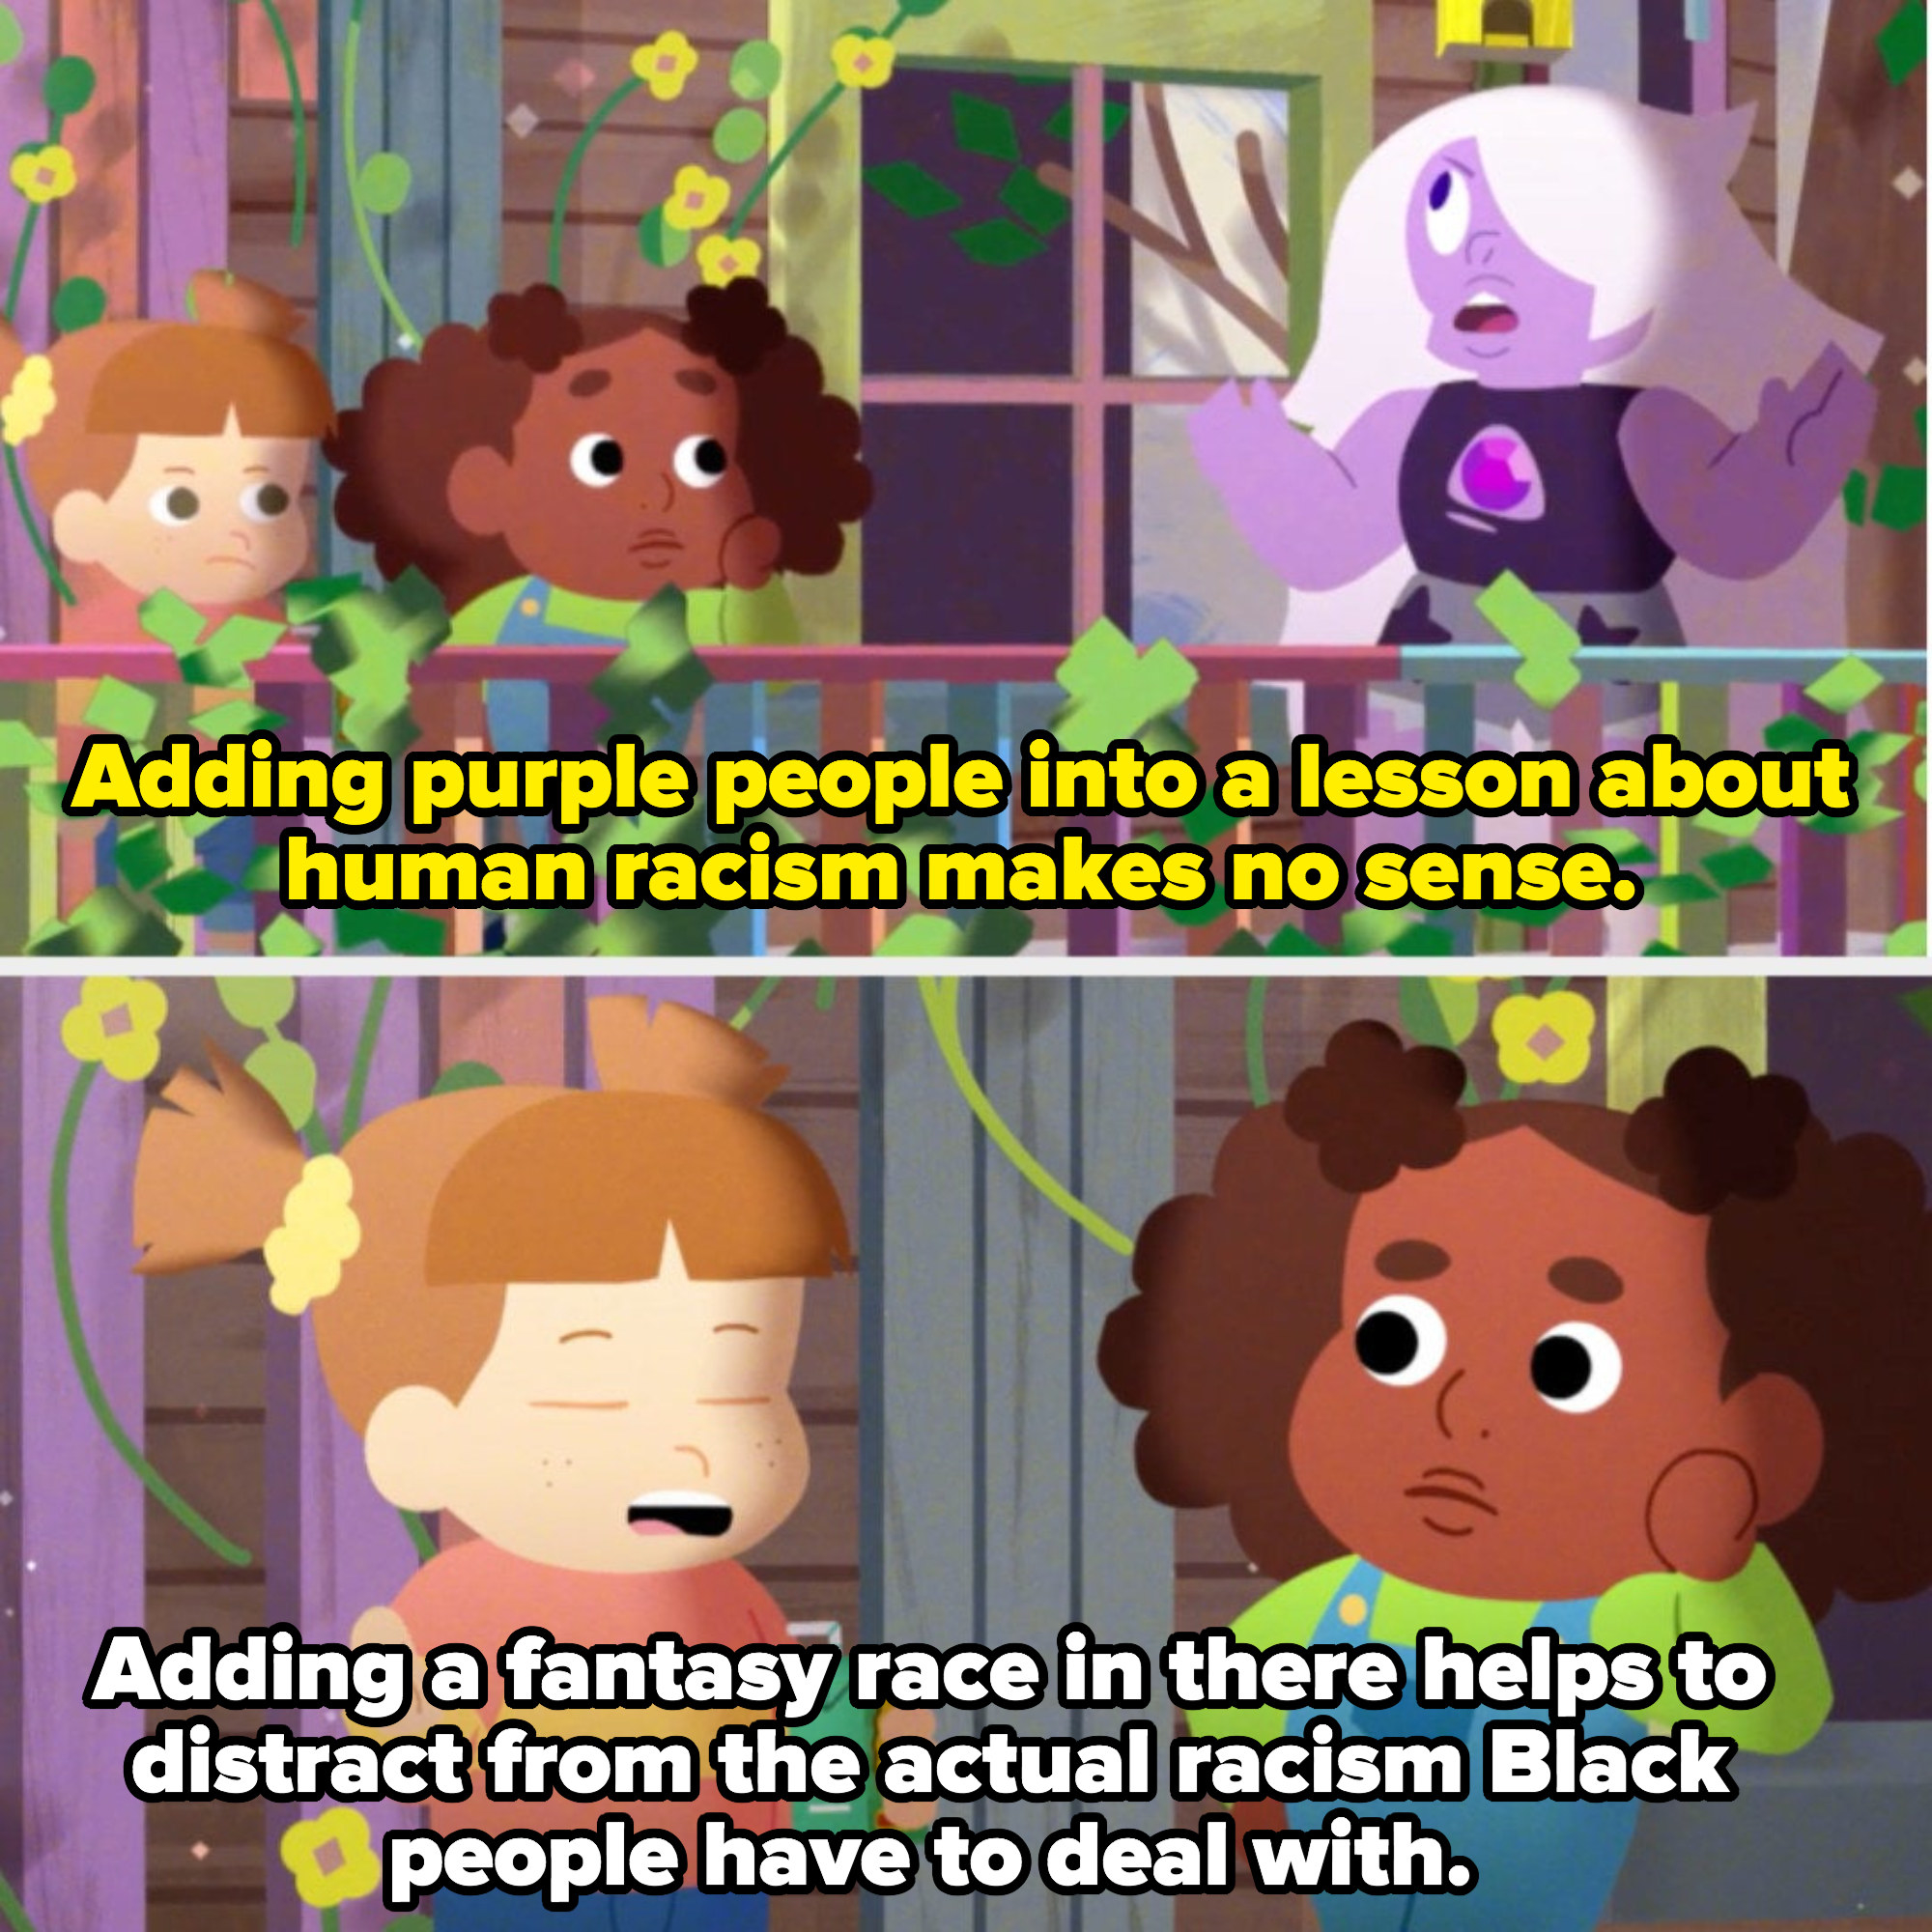 """a child says """"adding a fantasy race in there helps to distract from the actual racism black people have to deal with"""""""